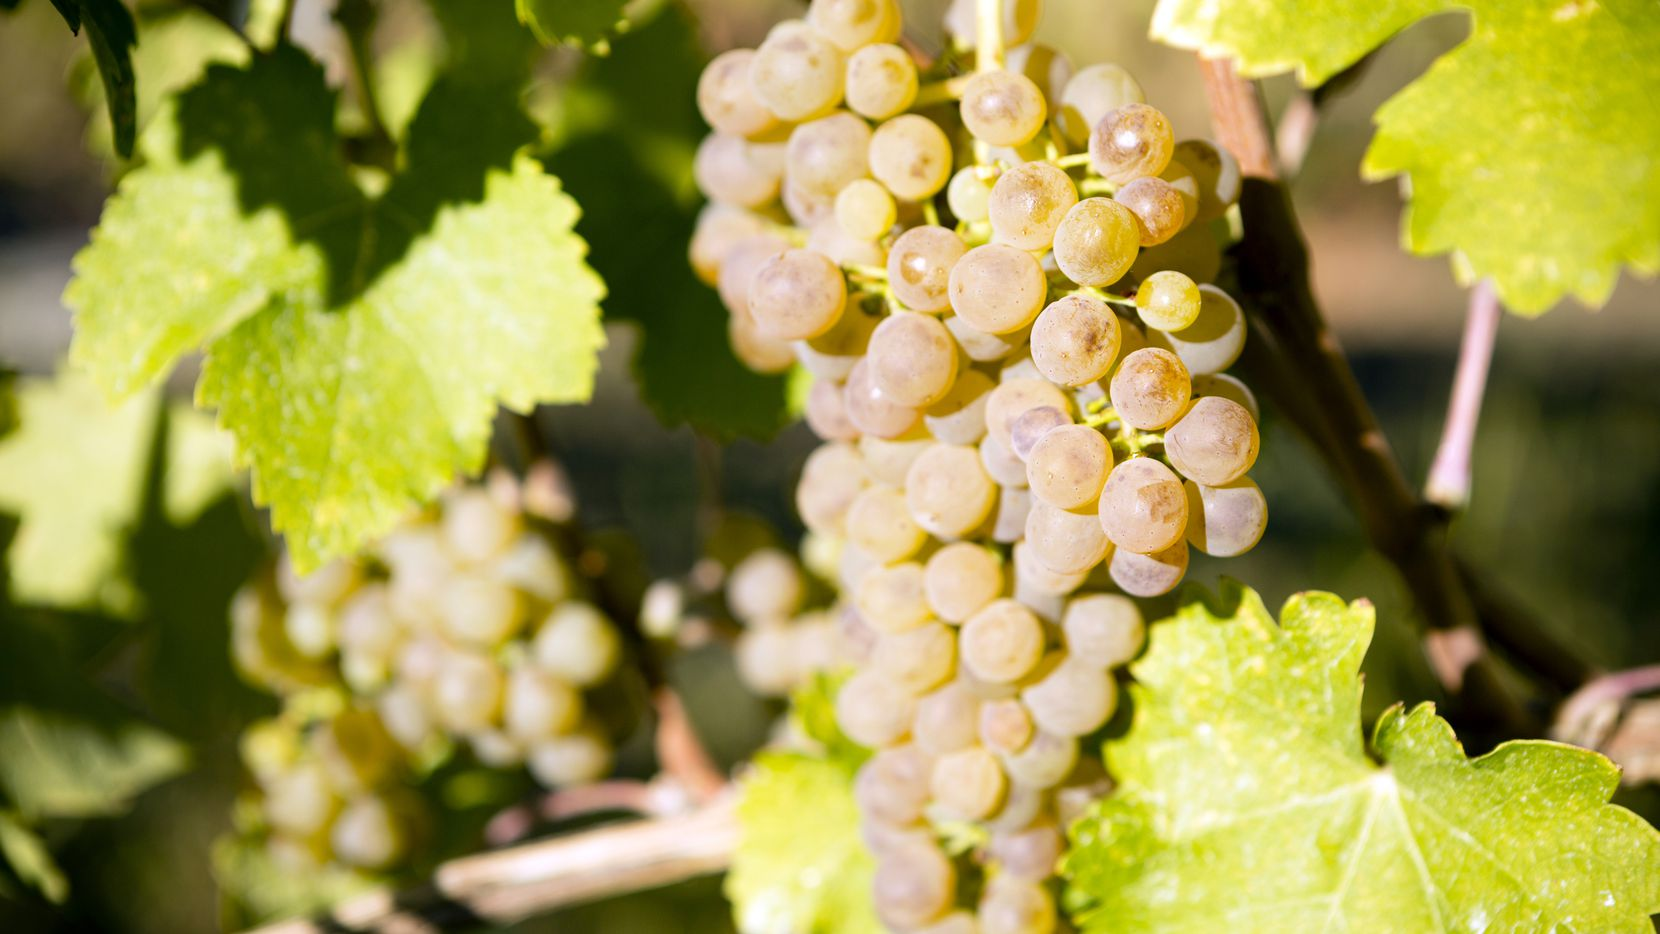 Viognier is a white wine grape variety.